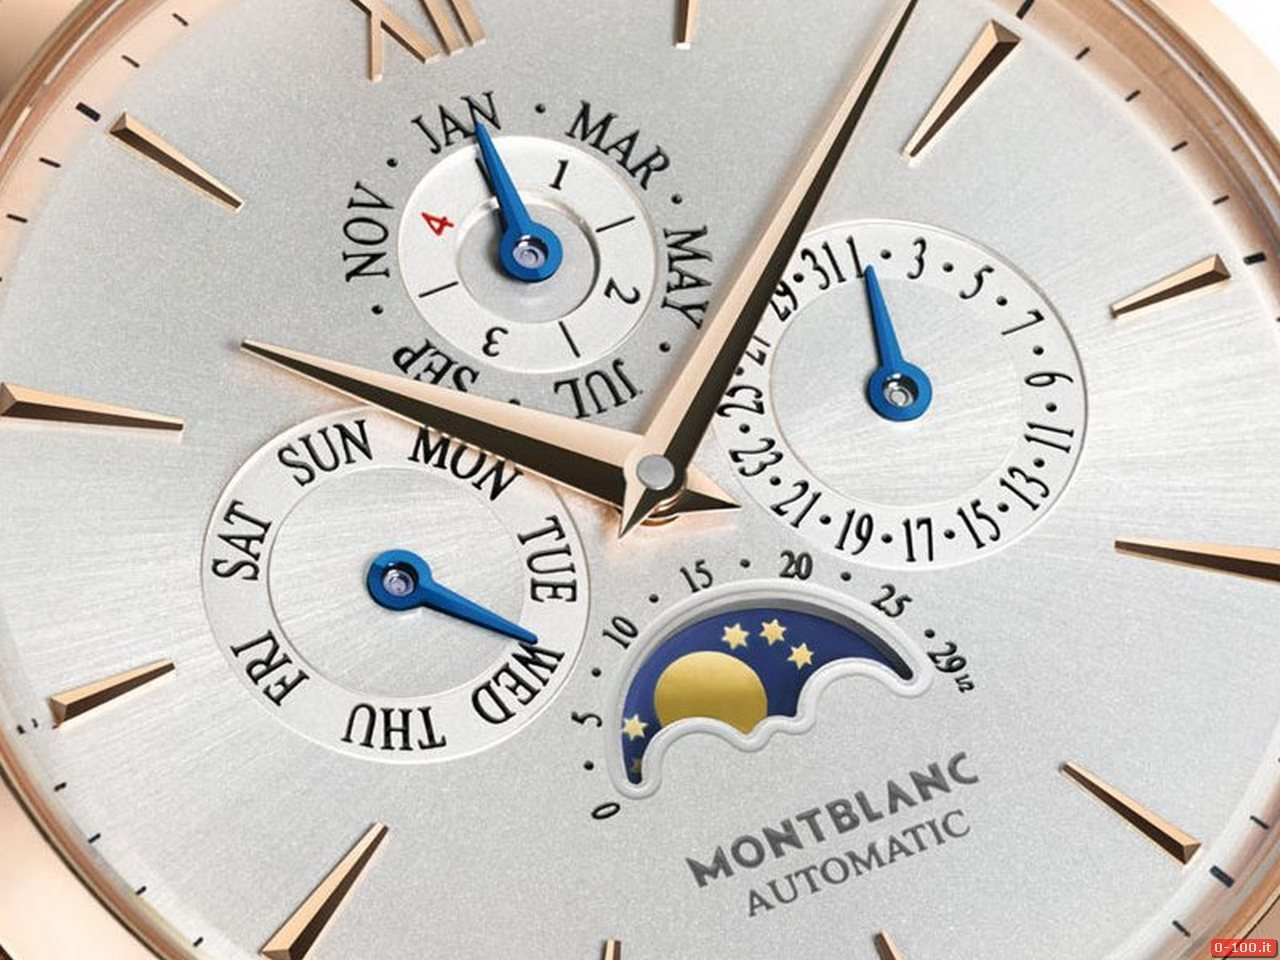 sihh-2014-montblanc-meisterstuck-heritage-perpetual-calendar-prezzo-price_0-1004